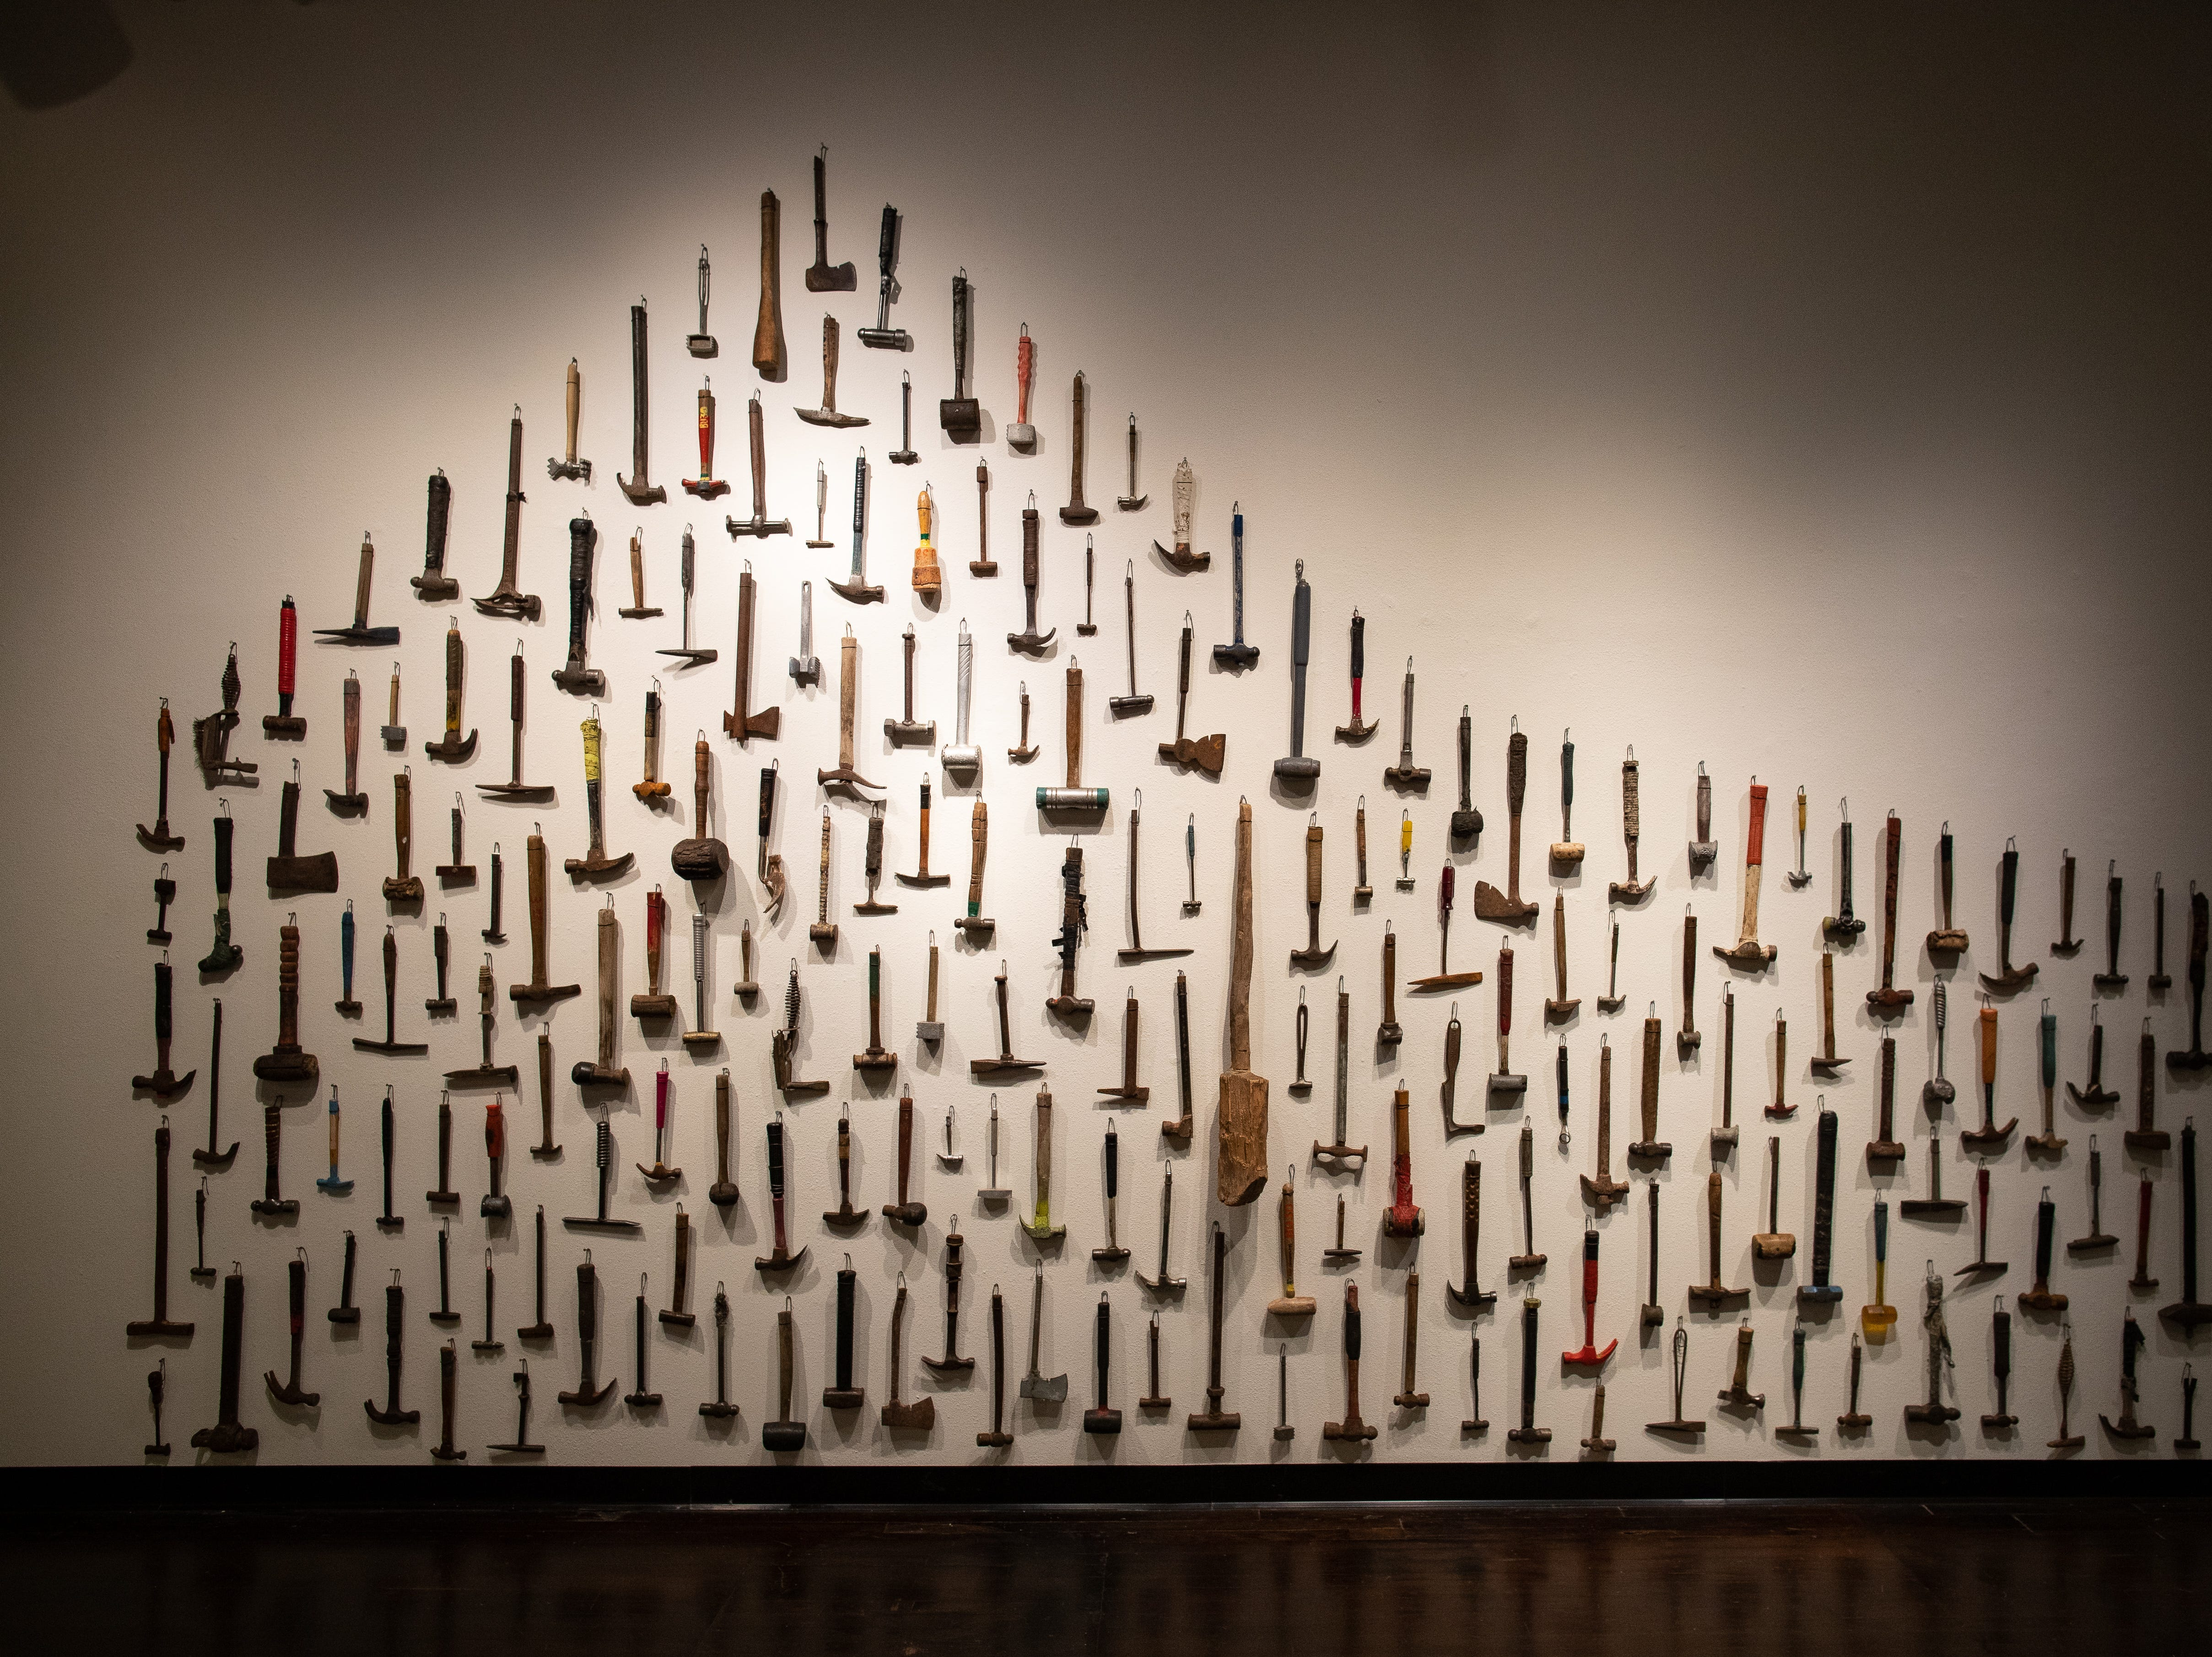 Hammers by Robbie Barber at K space Contemporary's From a Distance ... And Back.